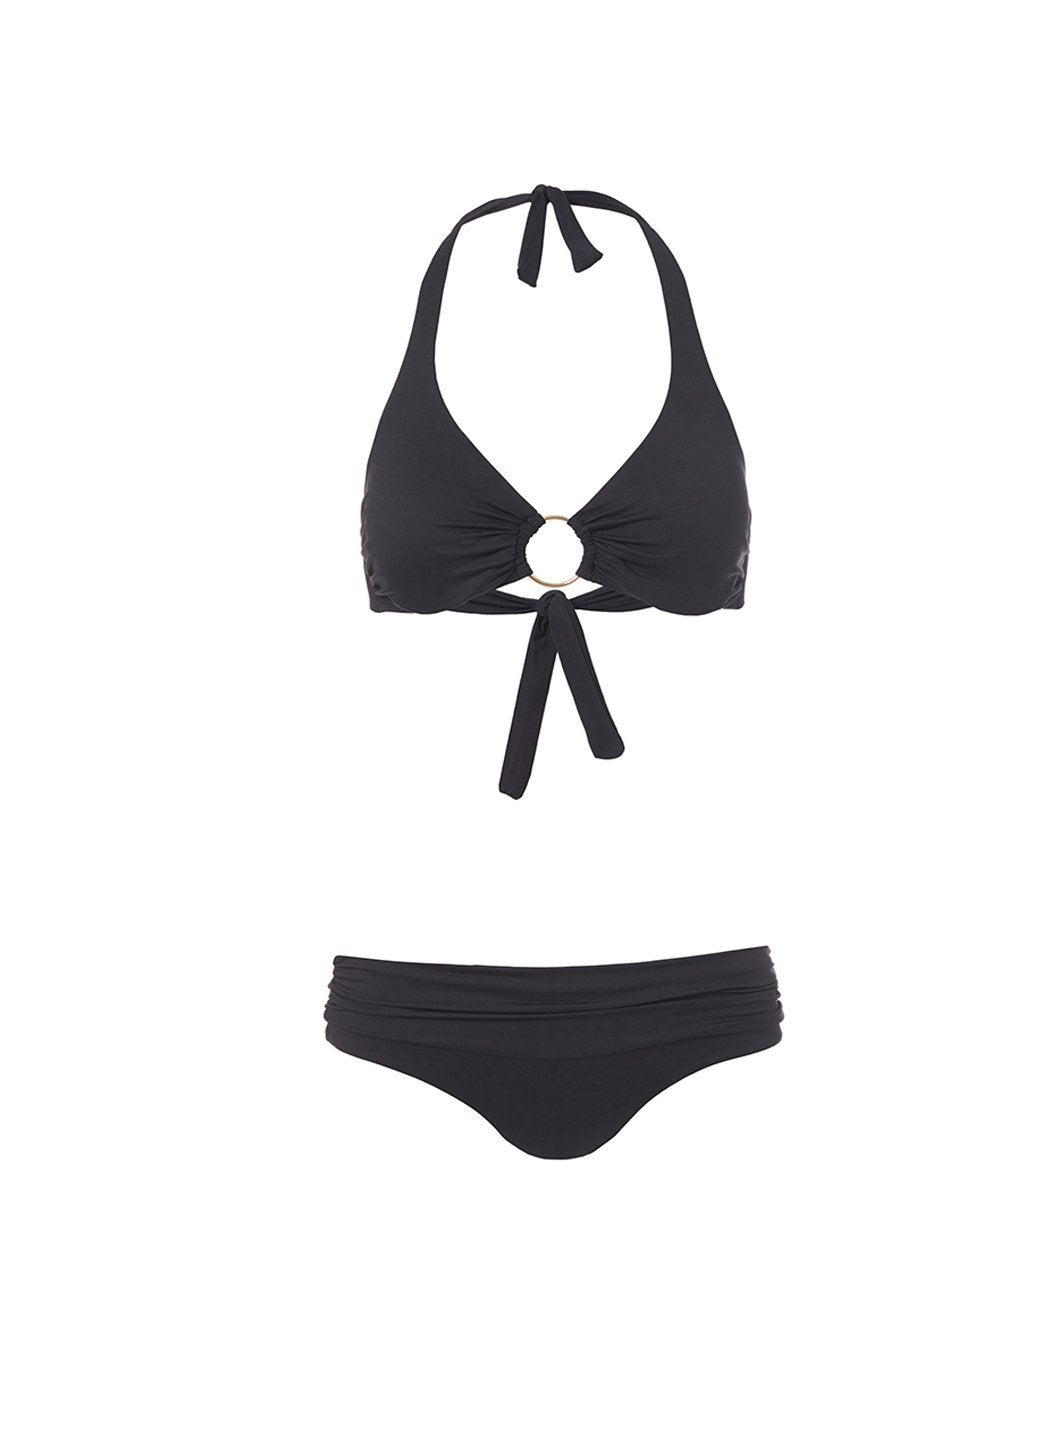 brussels black halterneck ring supportive bikini 2019